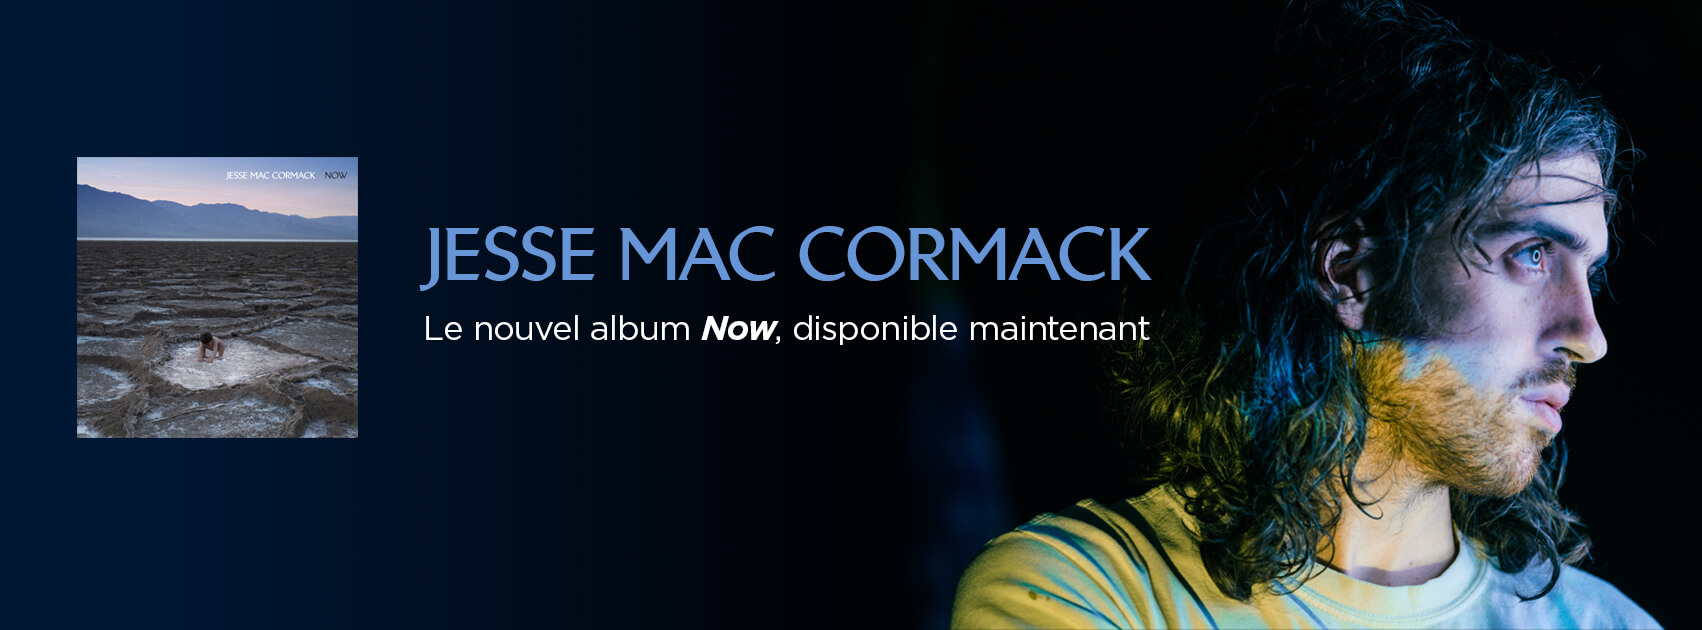 Jesse Mac Cormack Now disponible maintenant